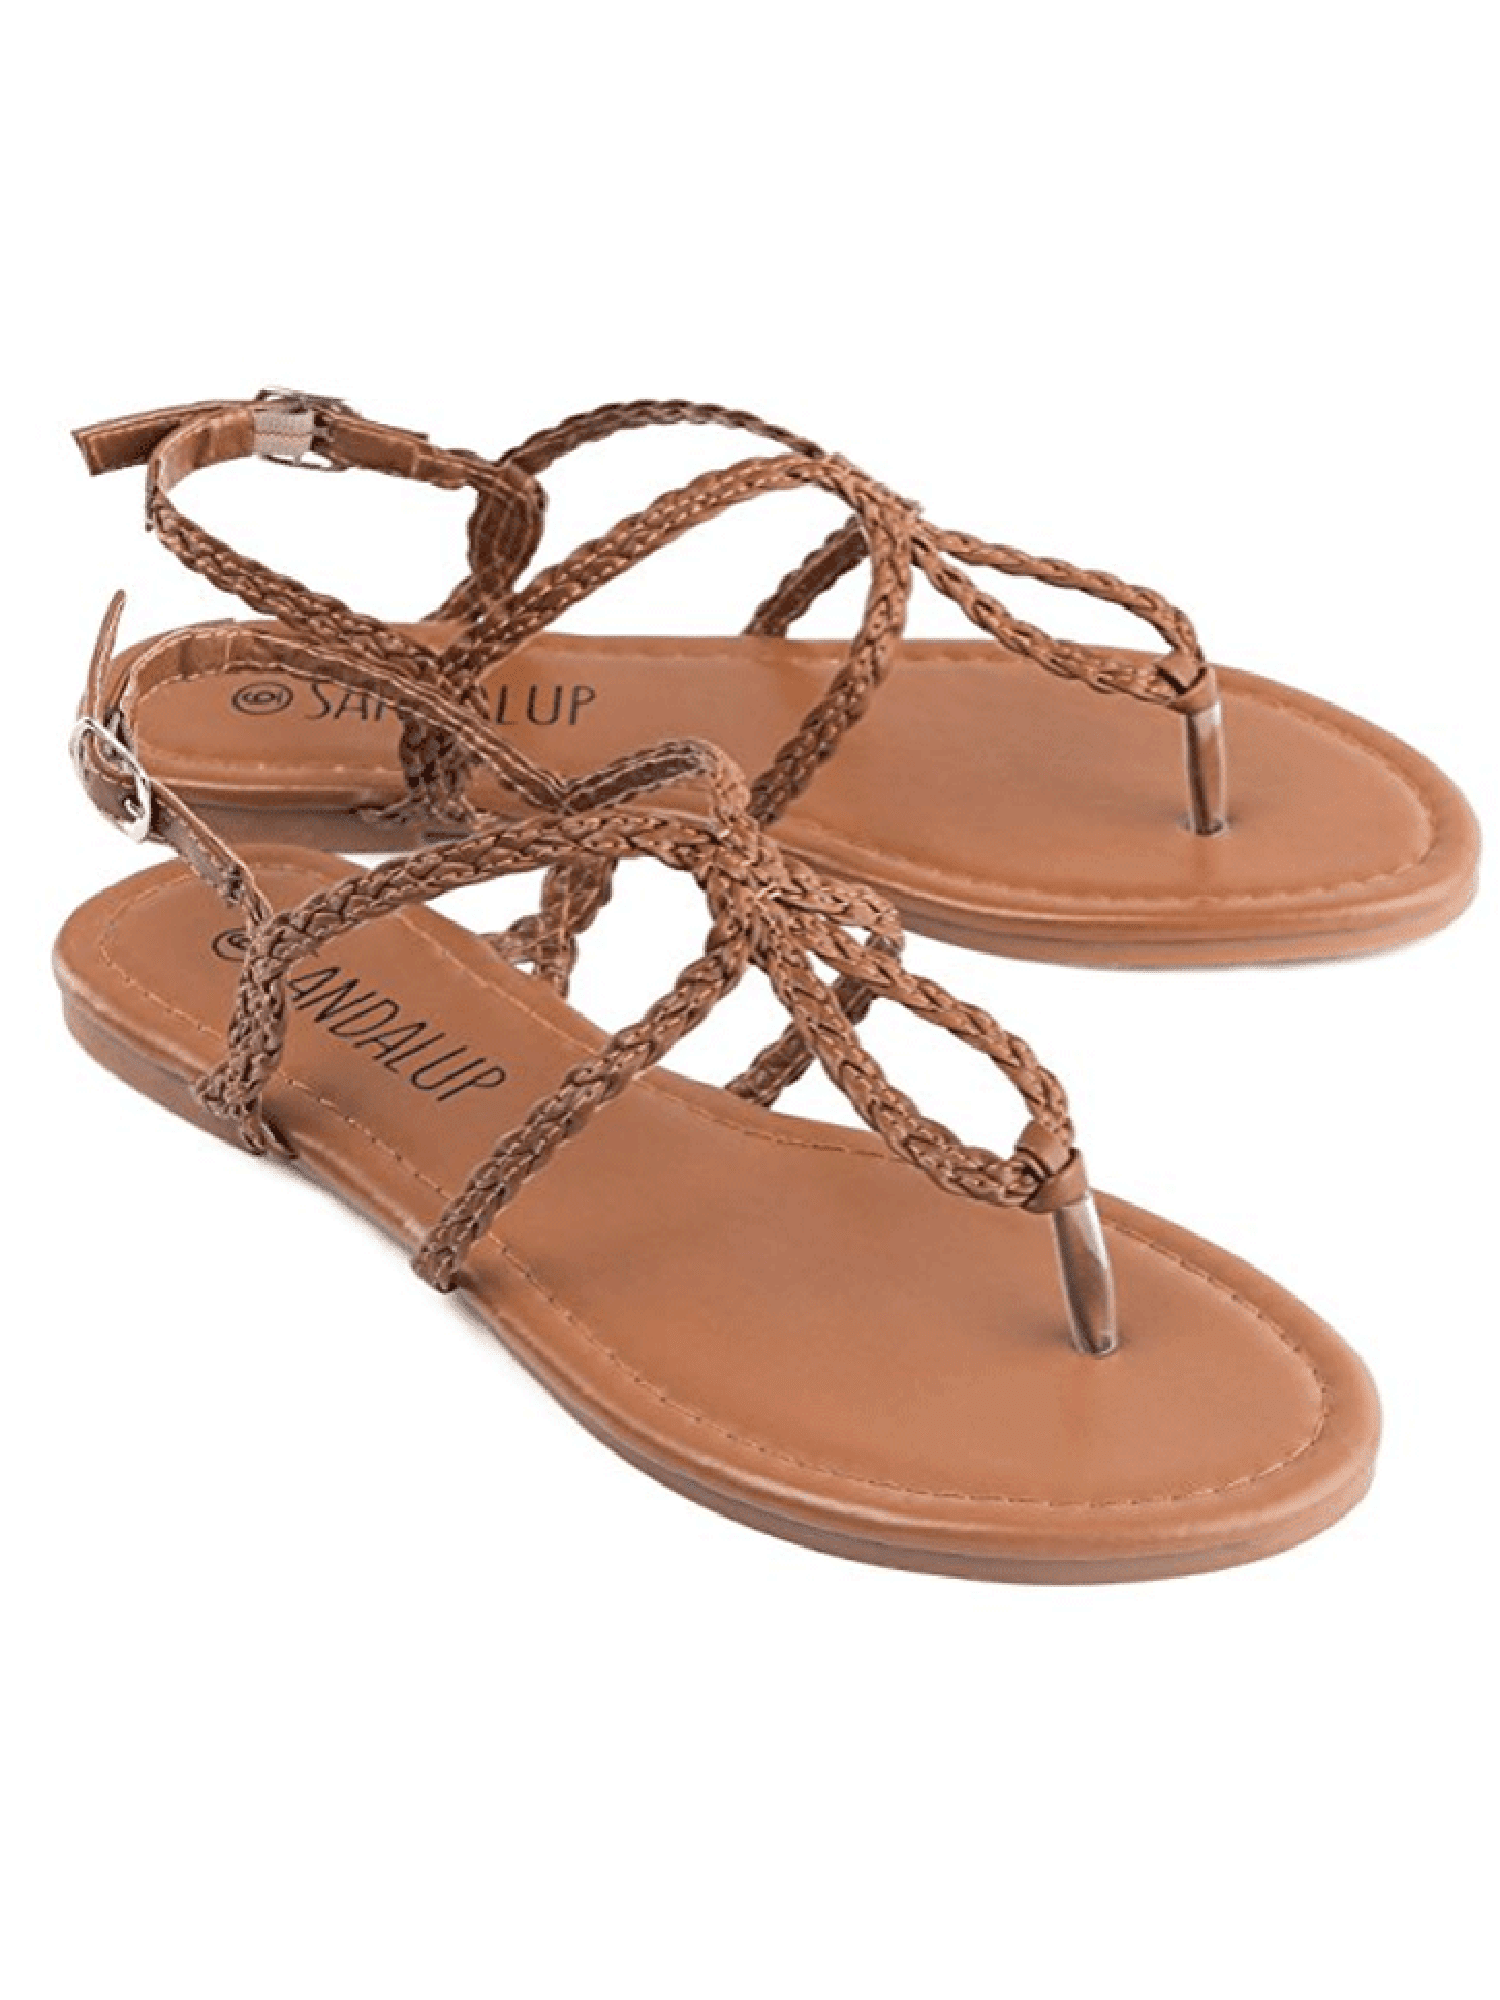 Sandalup Women Clearance Shoes, Summer